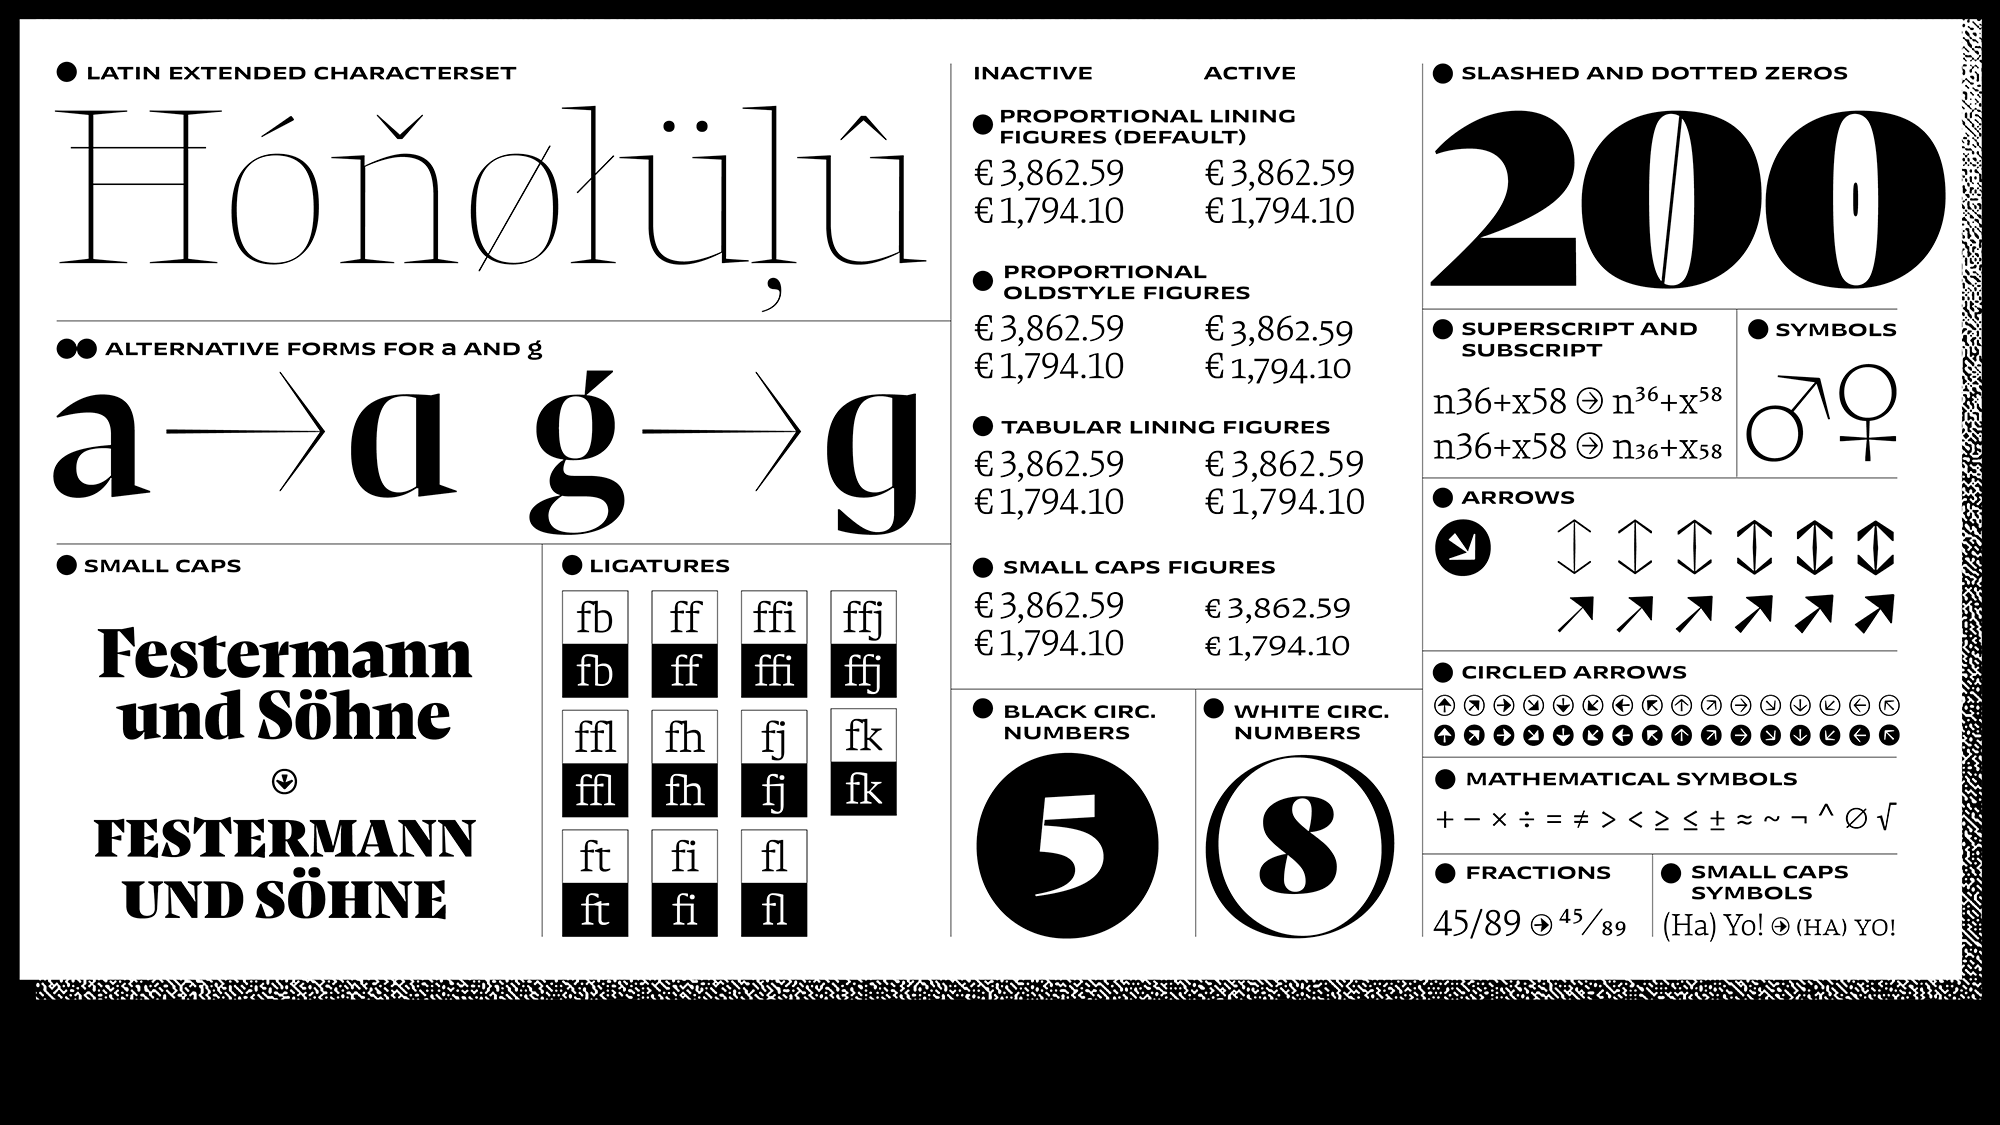 News Serif is a new typeface designed by Henning Skibbe for Typeverything.com